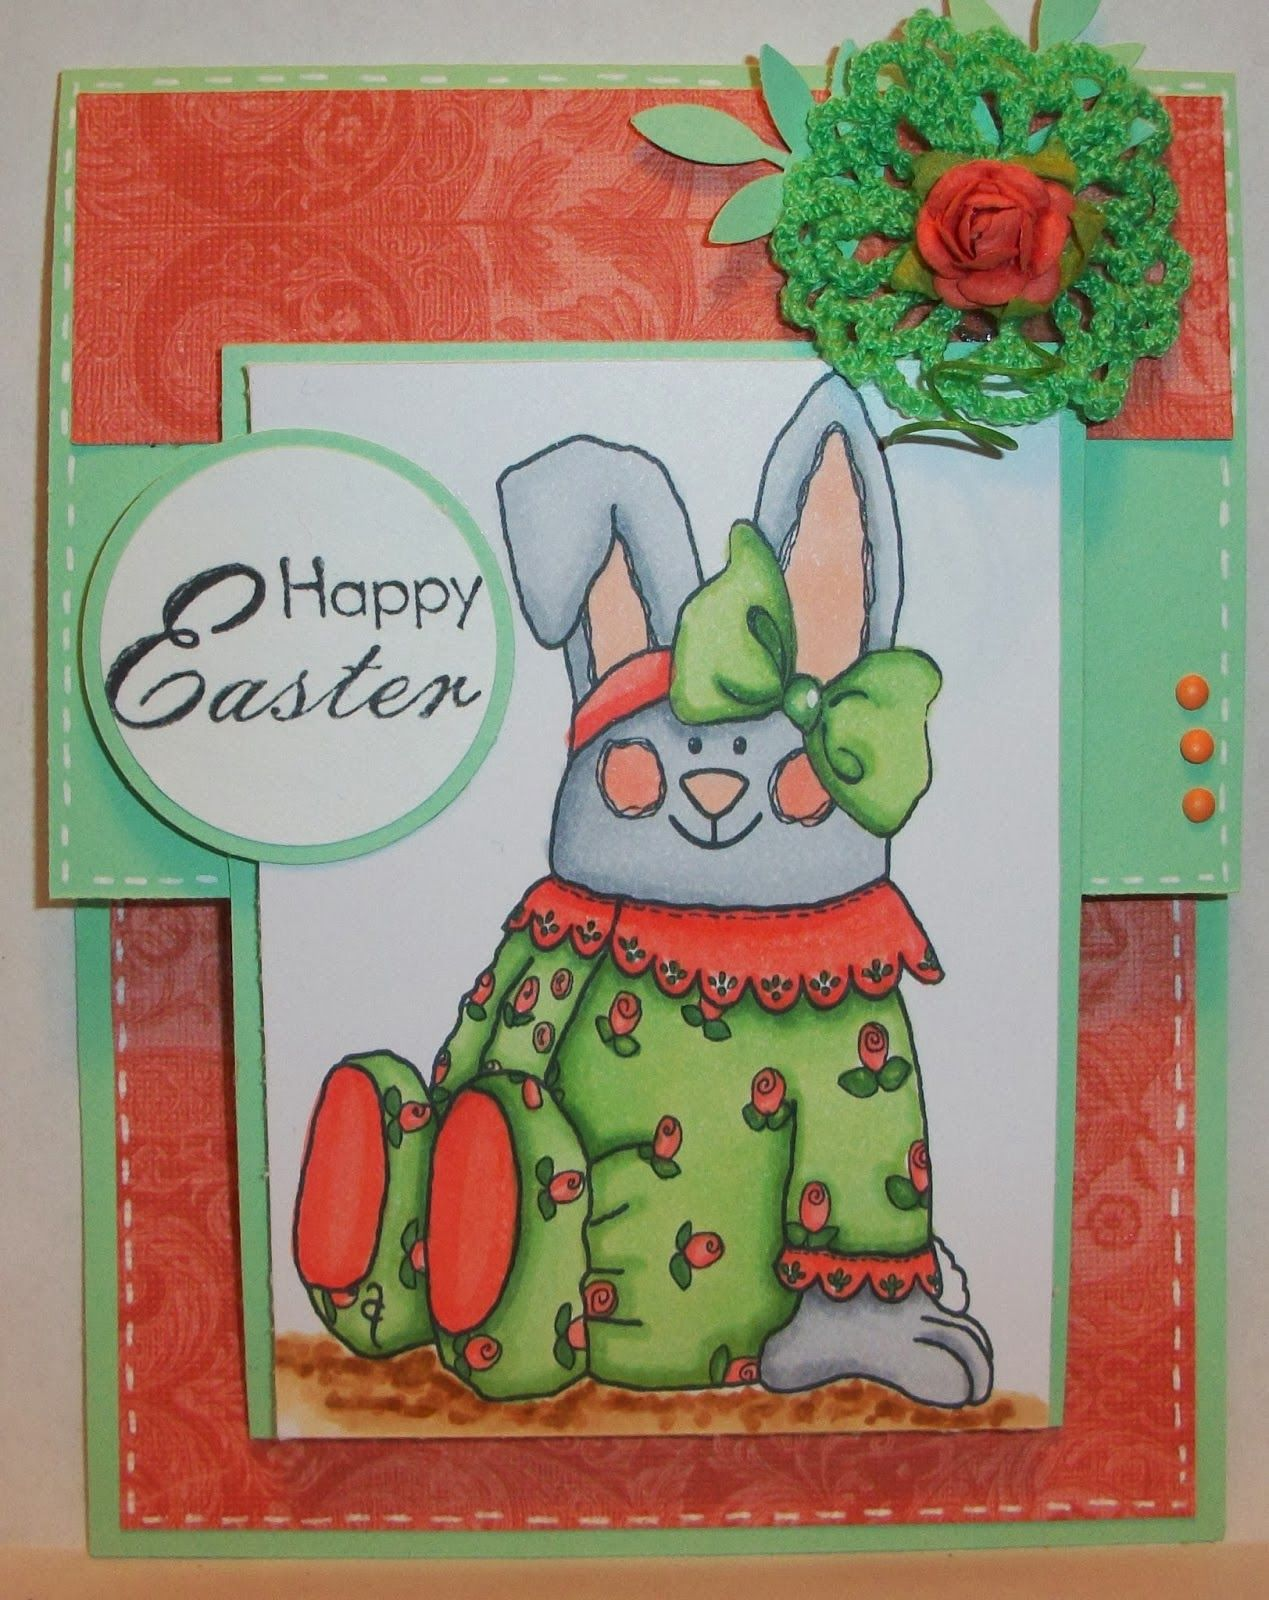 Send a smile 4 kids challenge blog team sas card by deonna its saturday and time for another fun challenge here at send a smile 4 kids this time our challenge is easterspring cards 4 kids kristyandbryce Image collections